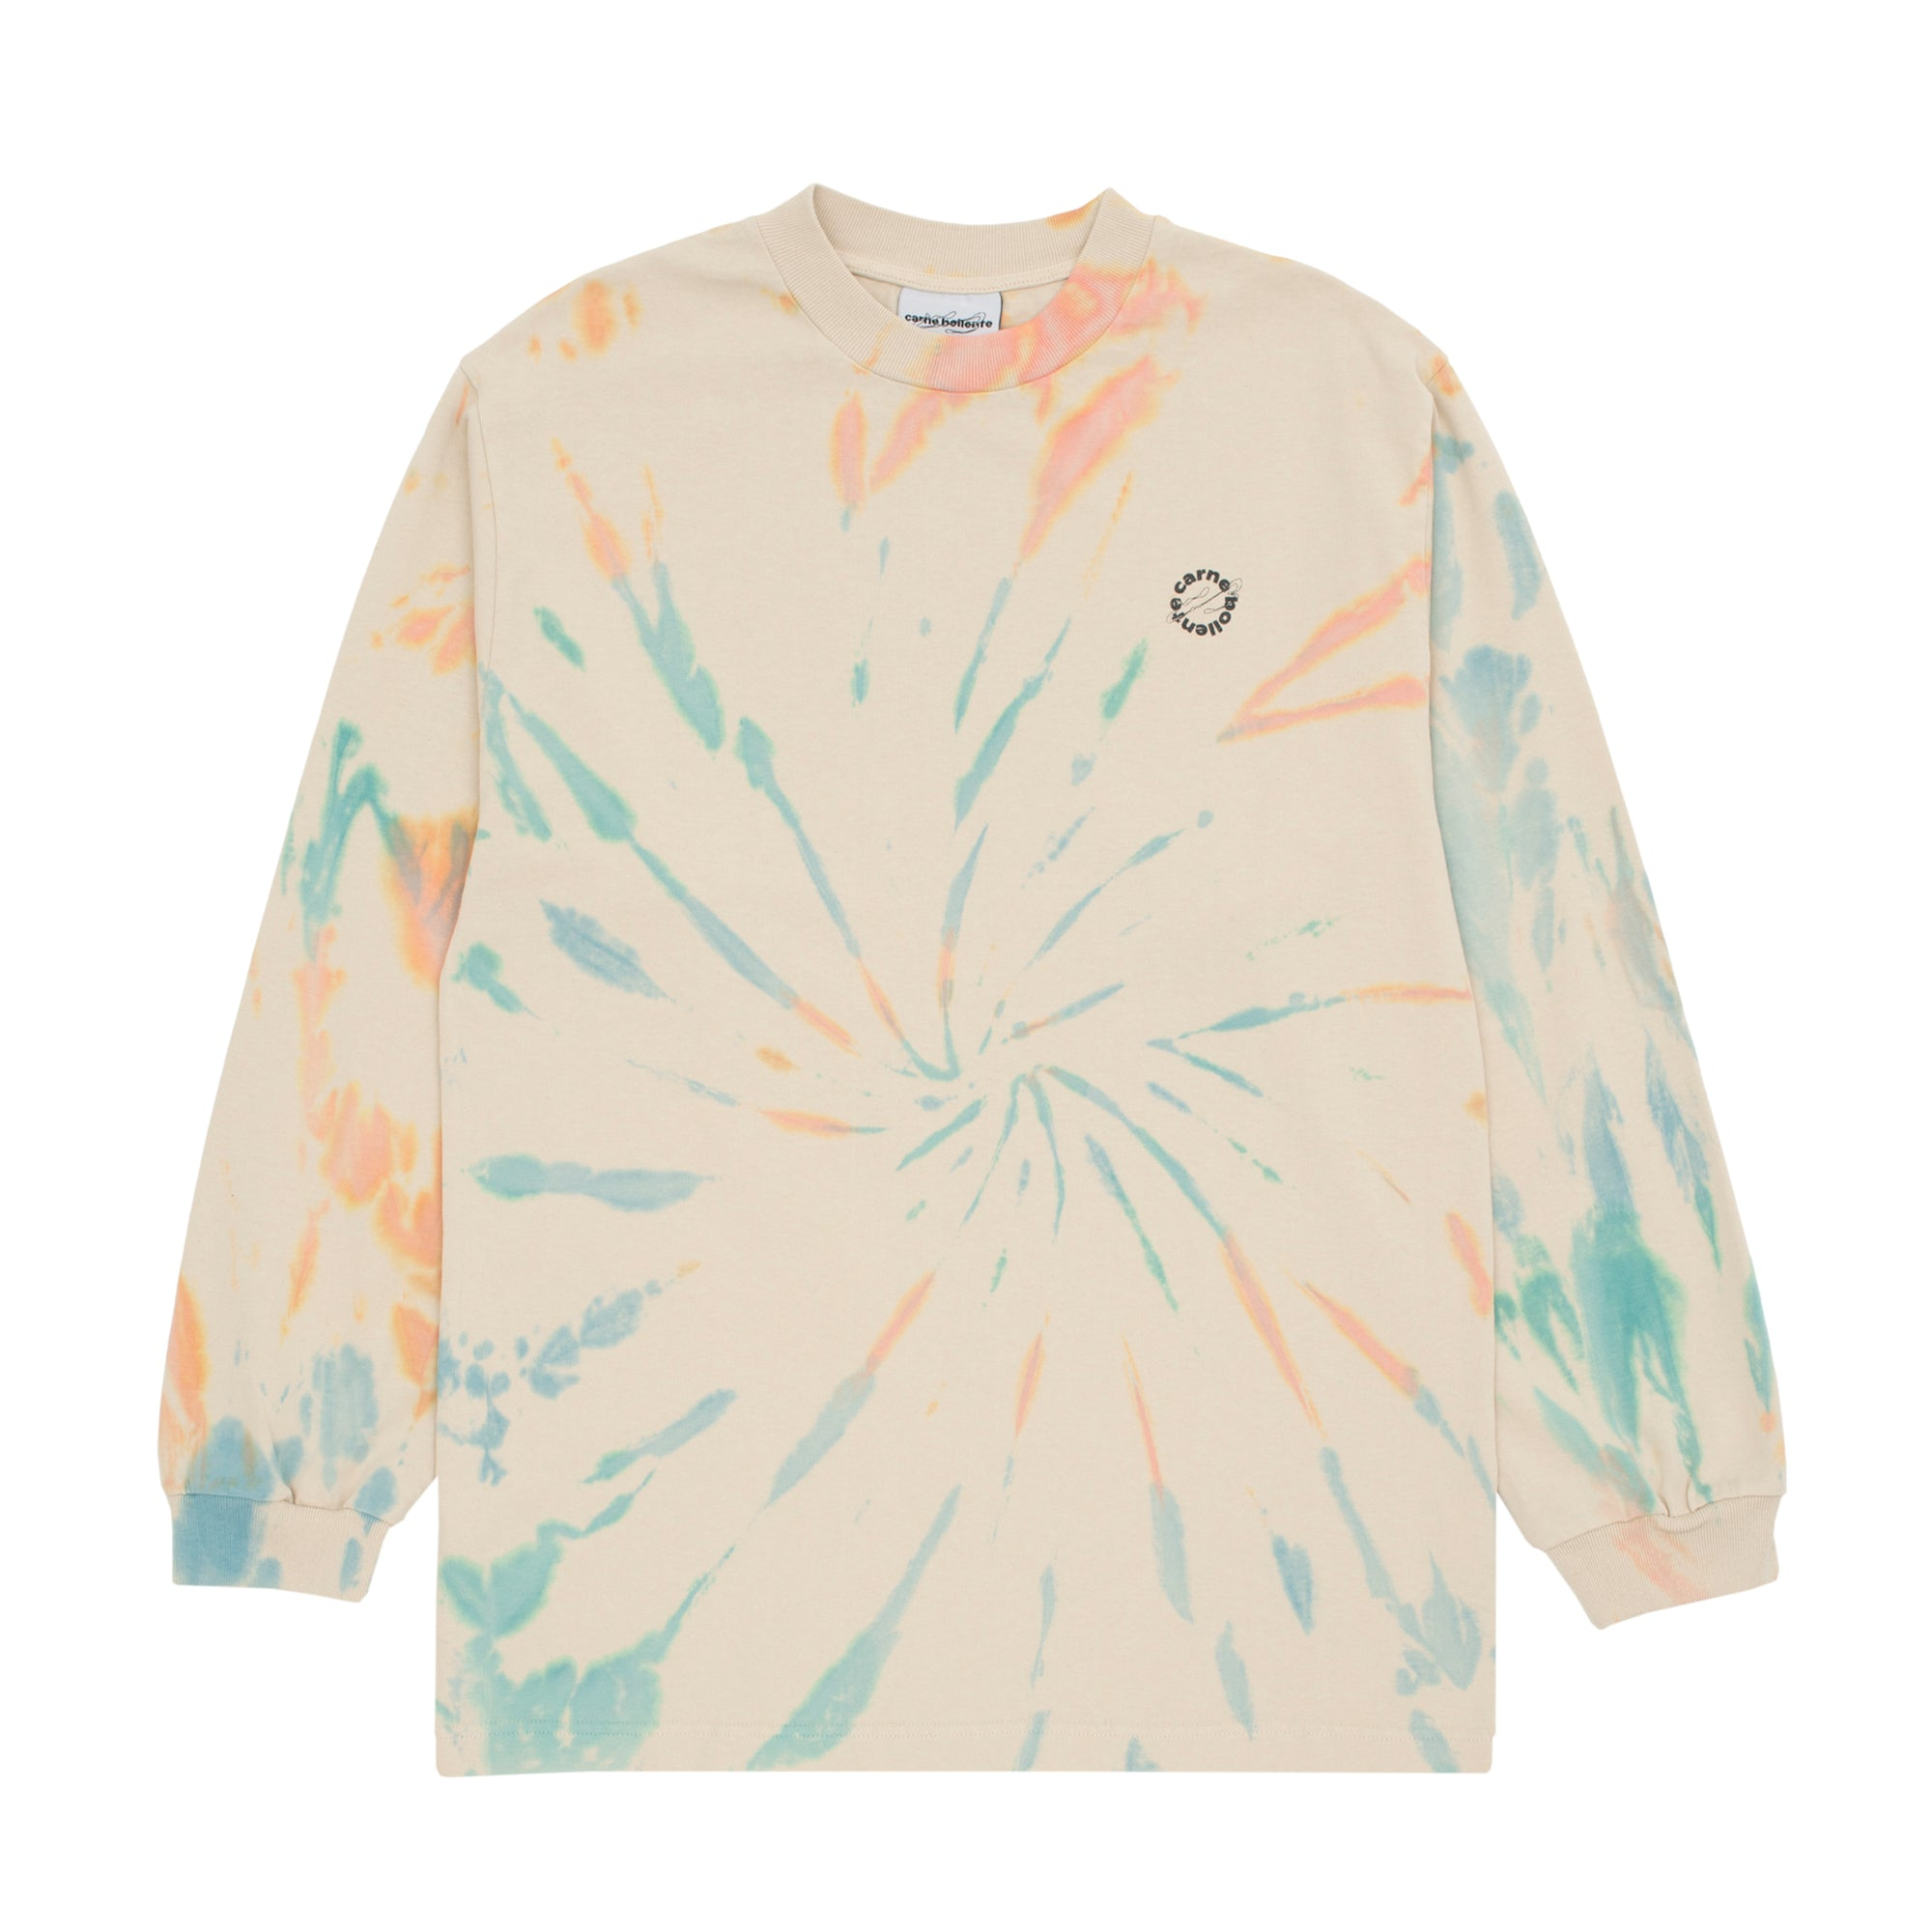 Carne Bollente Handy Fortune T-Shirt: Tie Die Beige - The Union Project